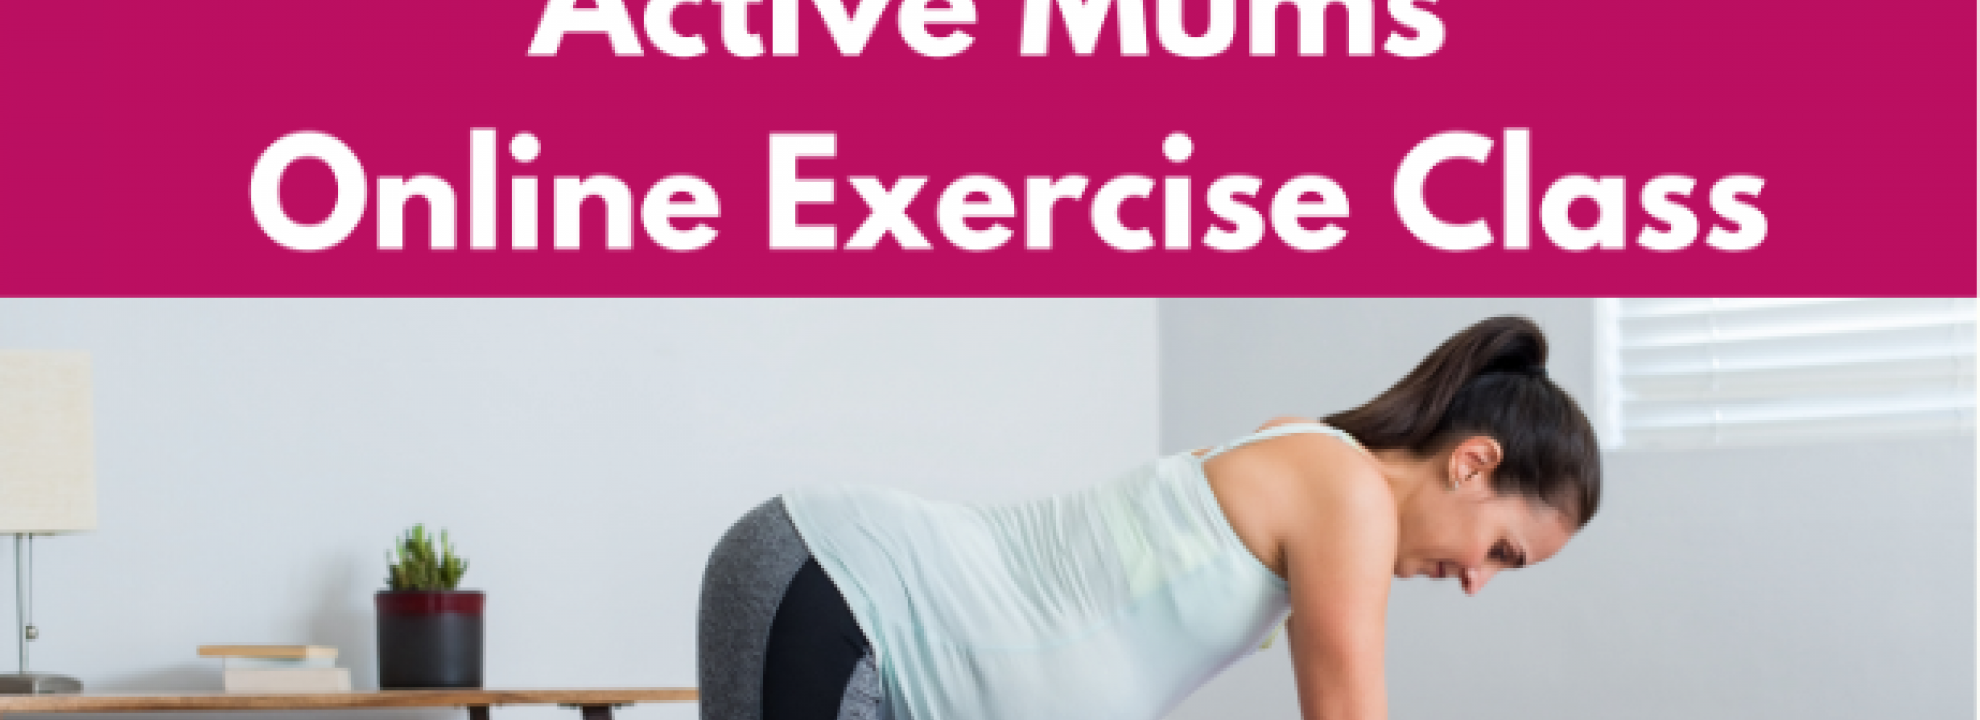 Active Mums Online Exercise Class Banner